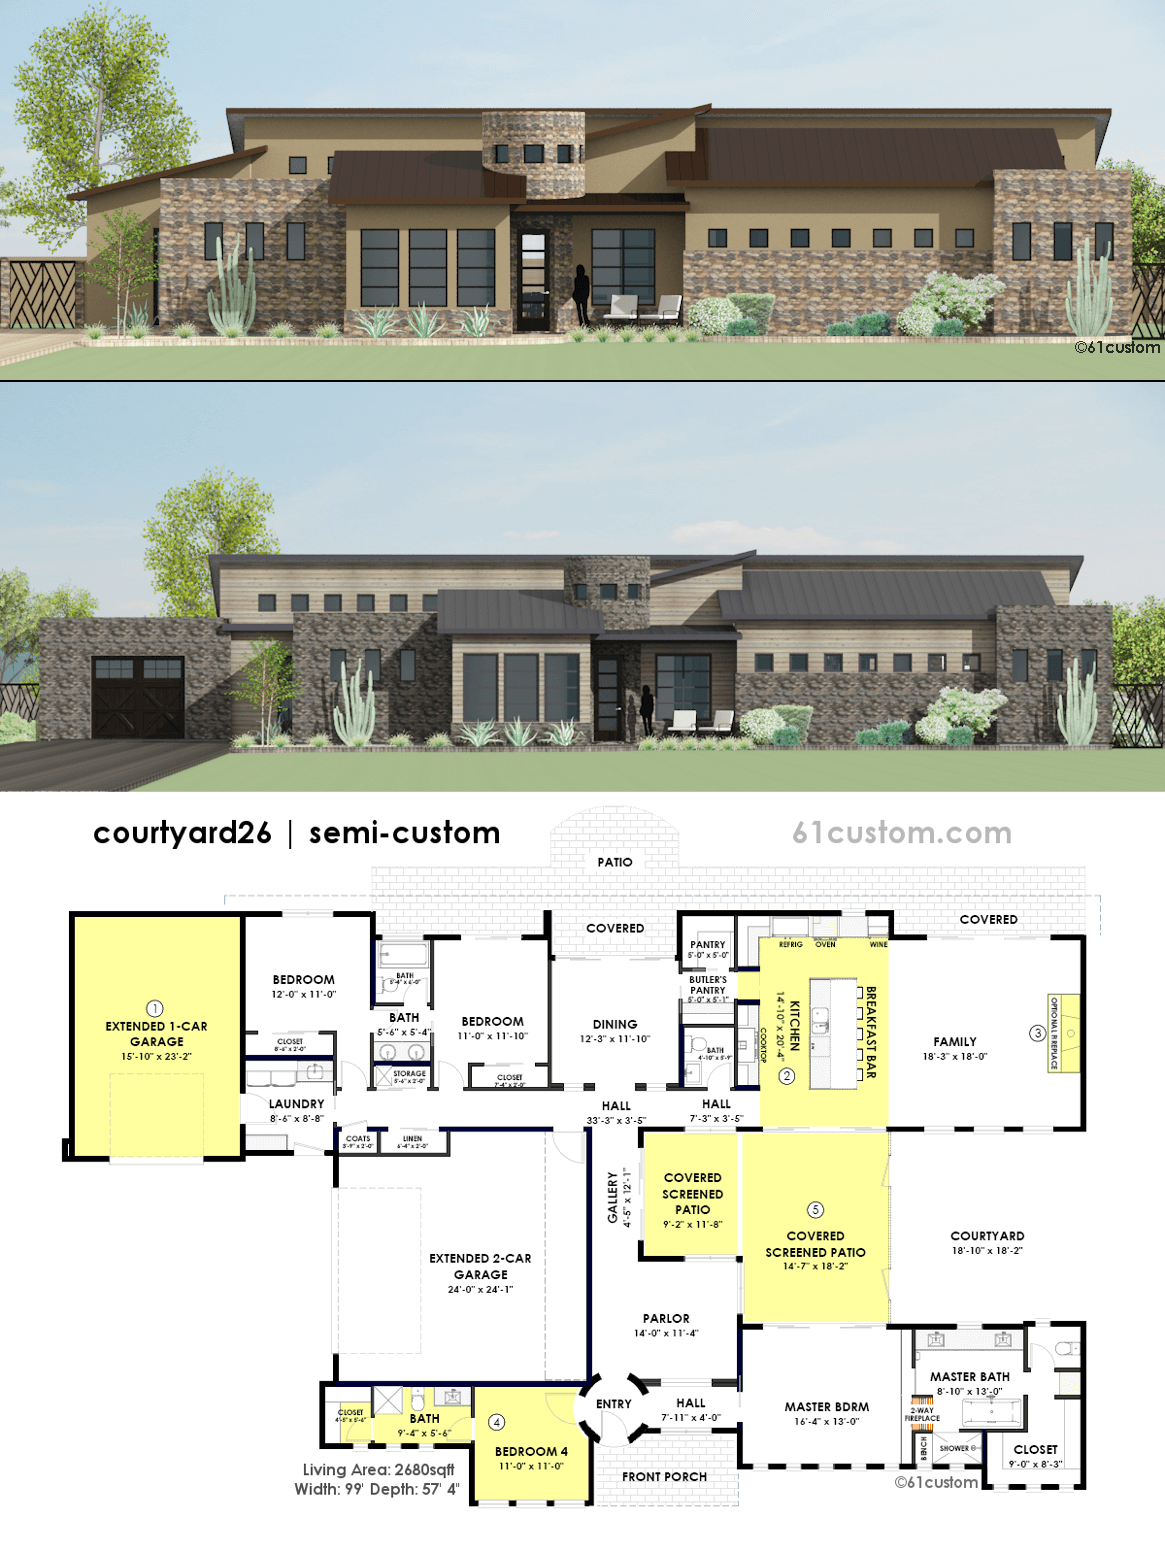 Contemporary side courtyard house plan 61custom Modern courtyard house plans